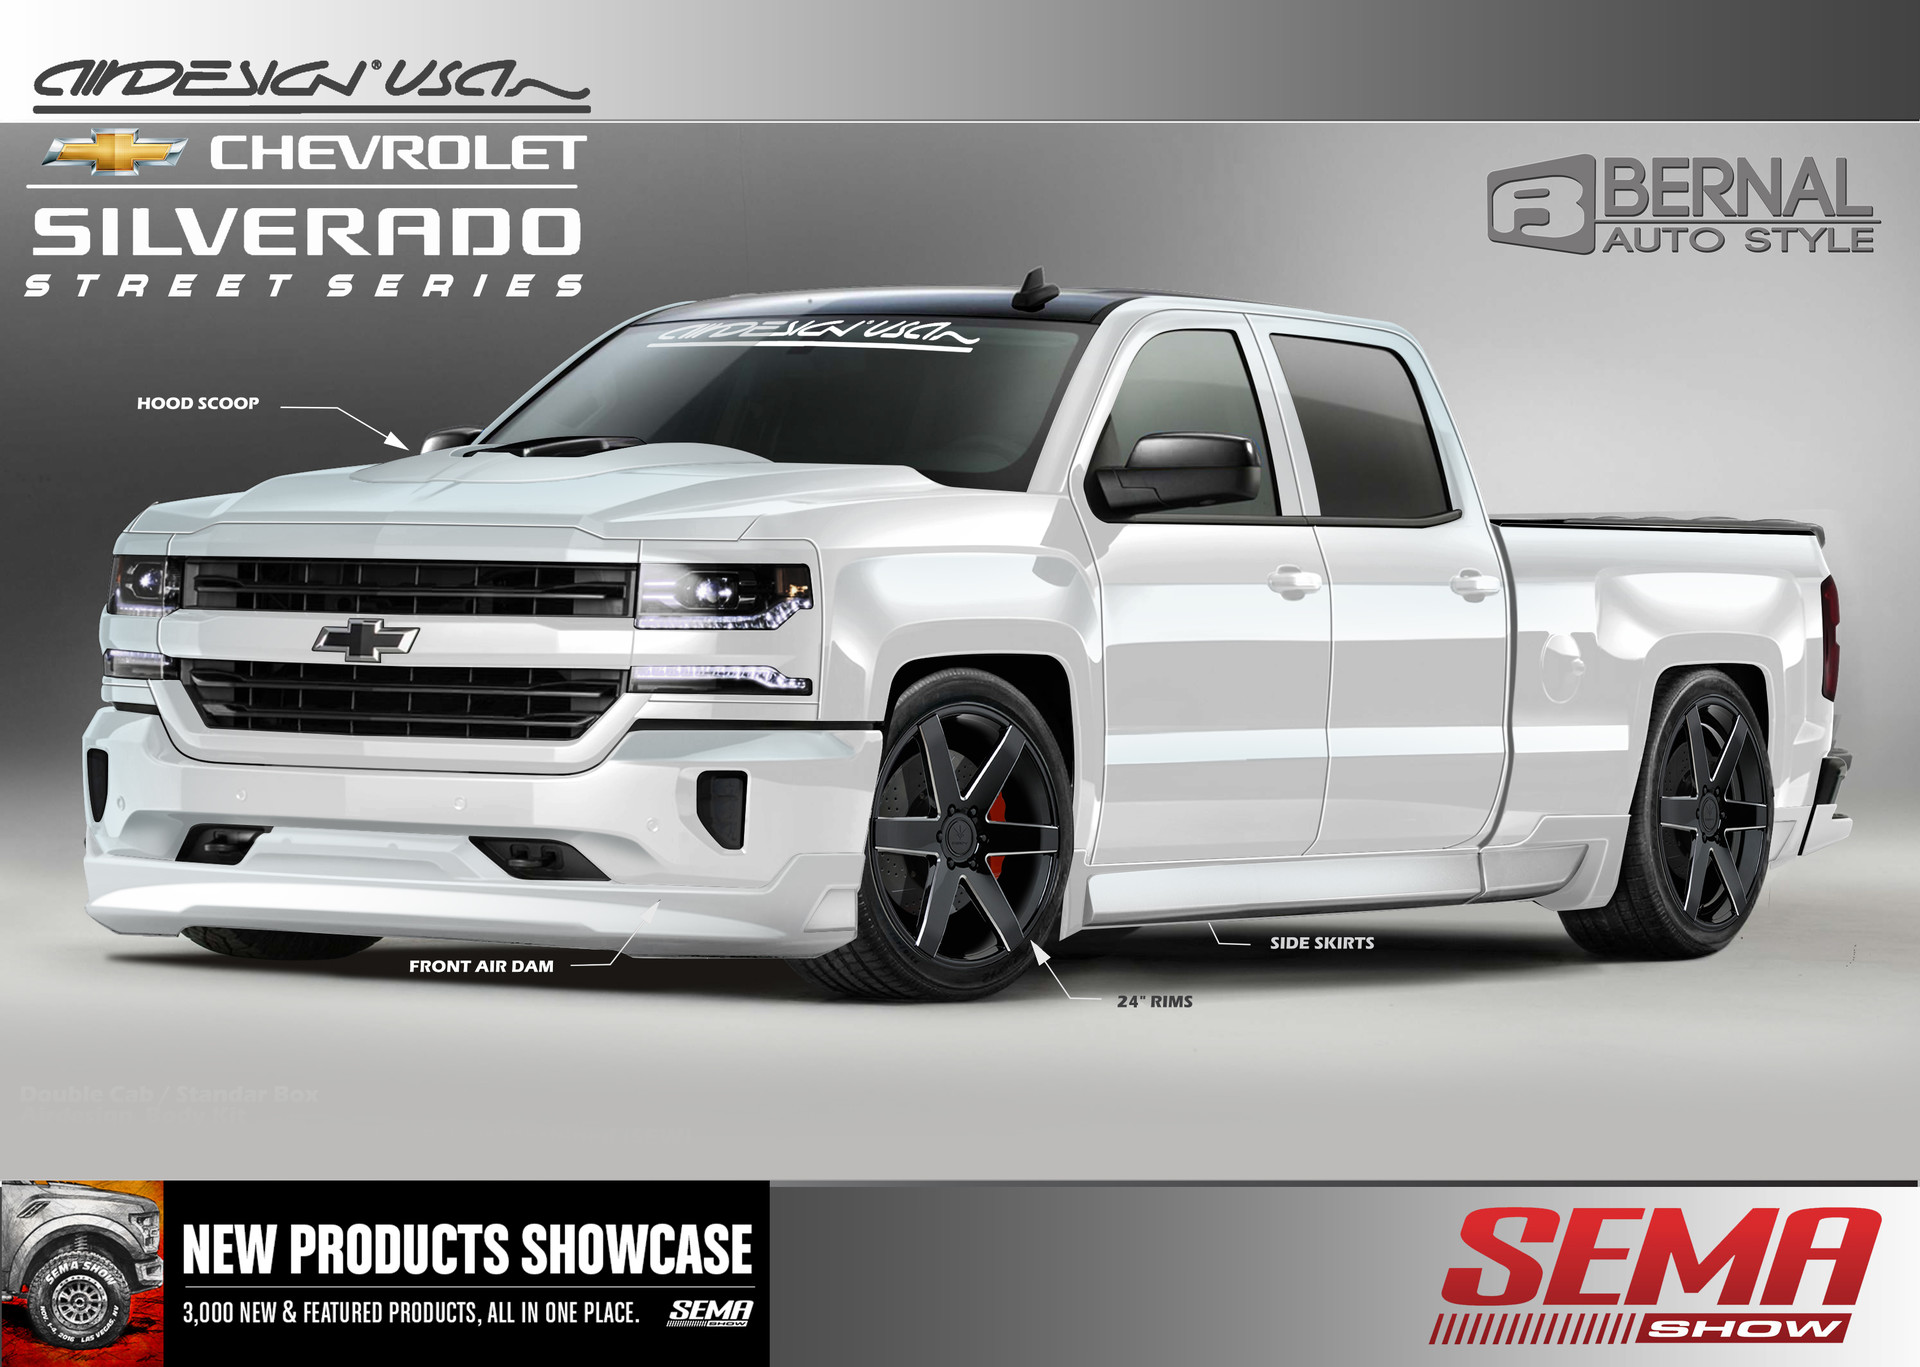 chevy silverado street truck - photo #23